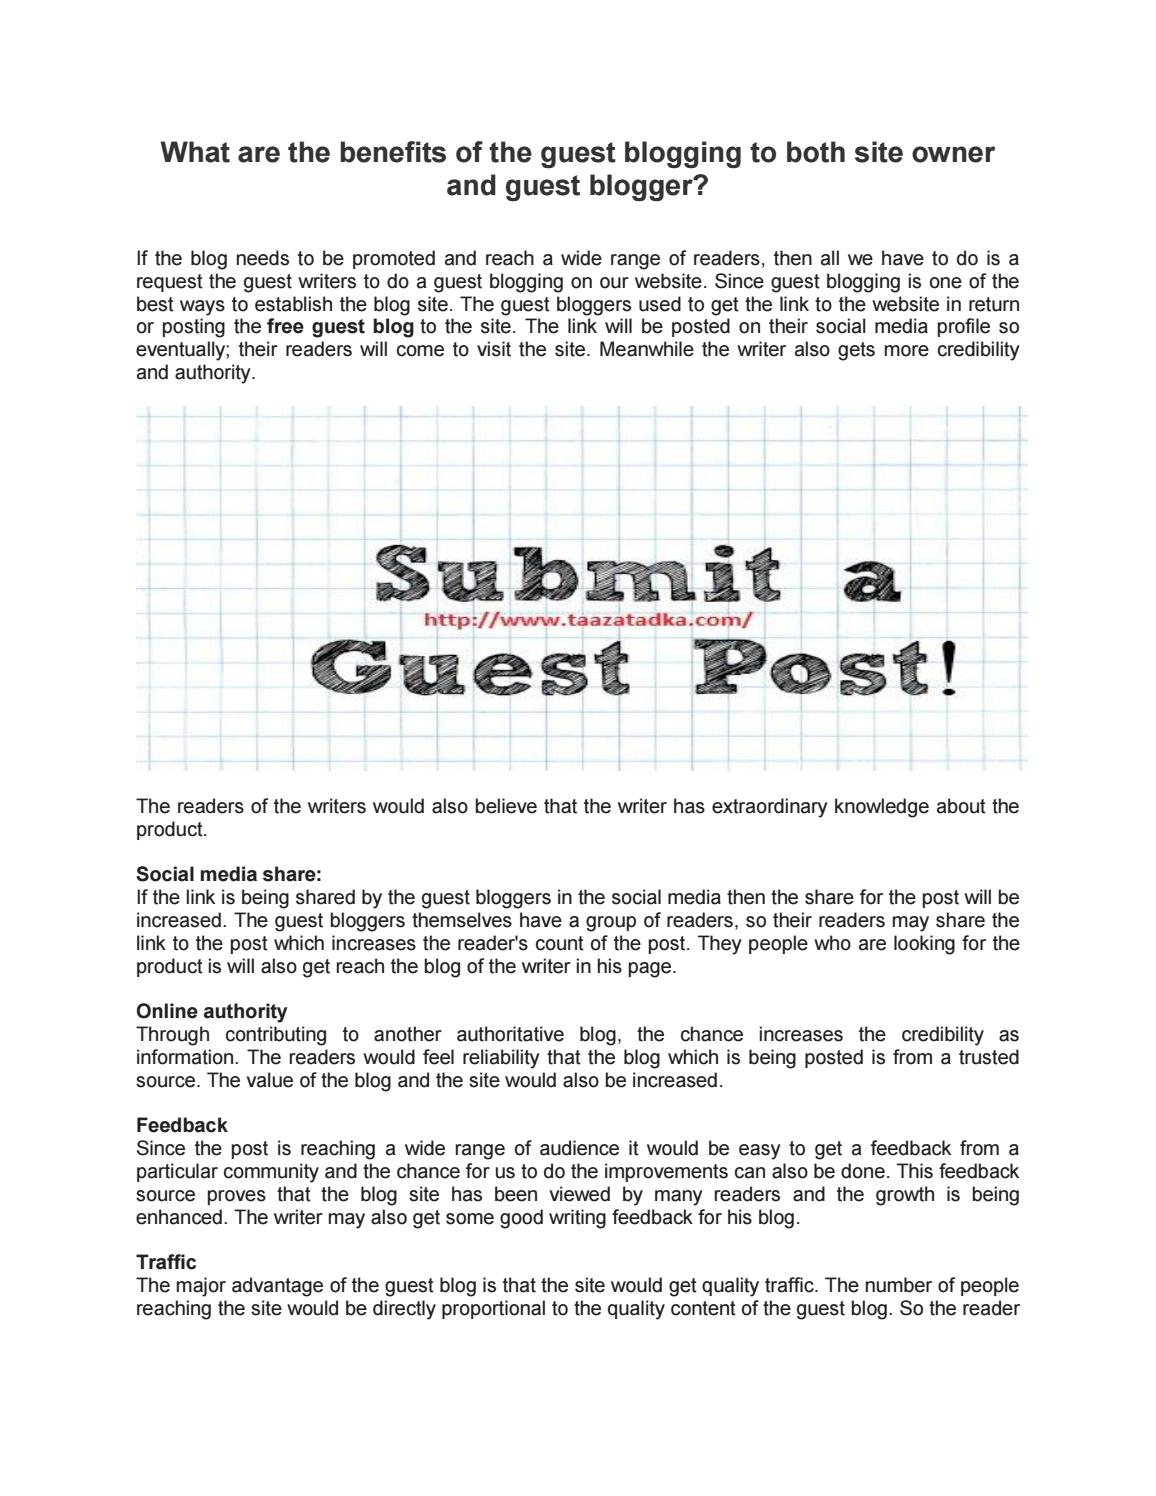 What are the benefits of the guest blogging to both site owner and